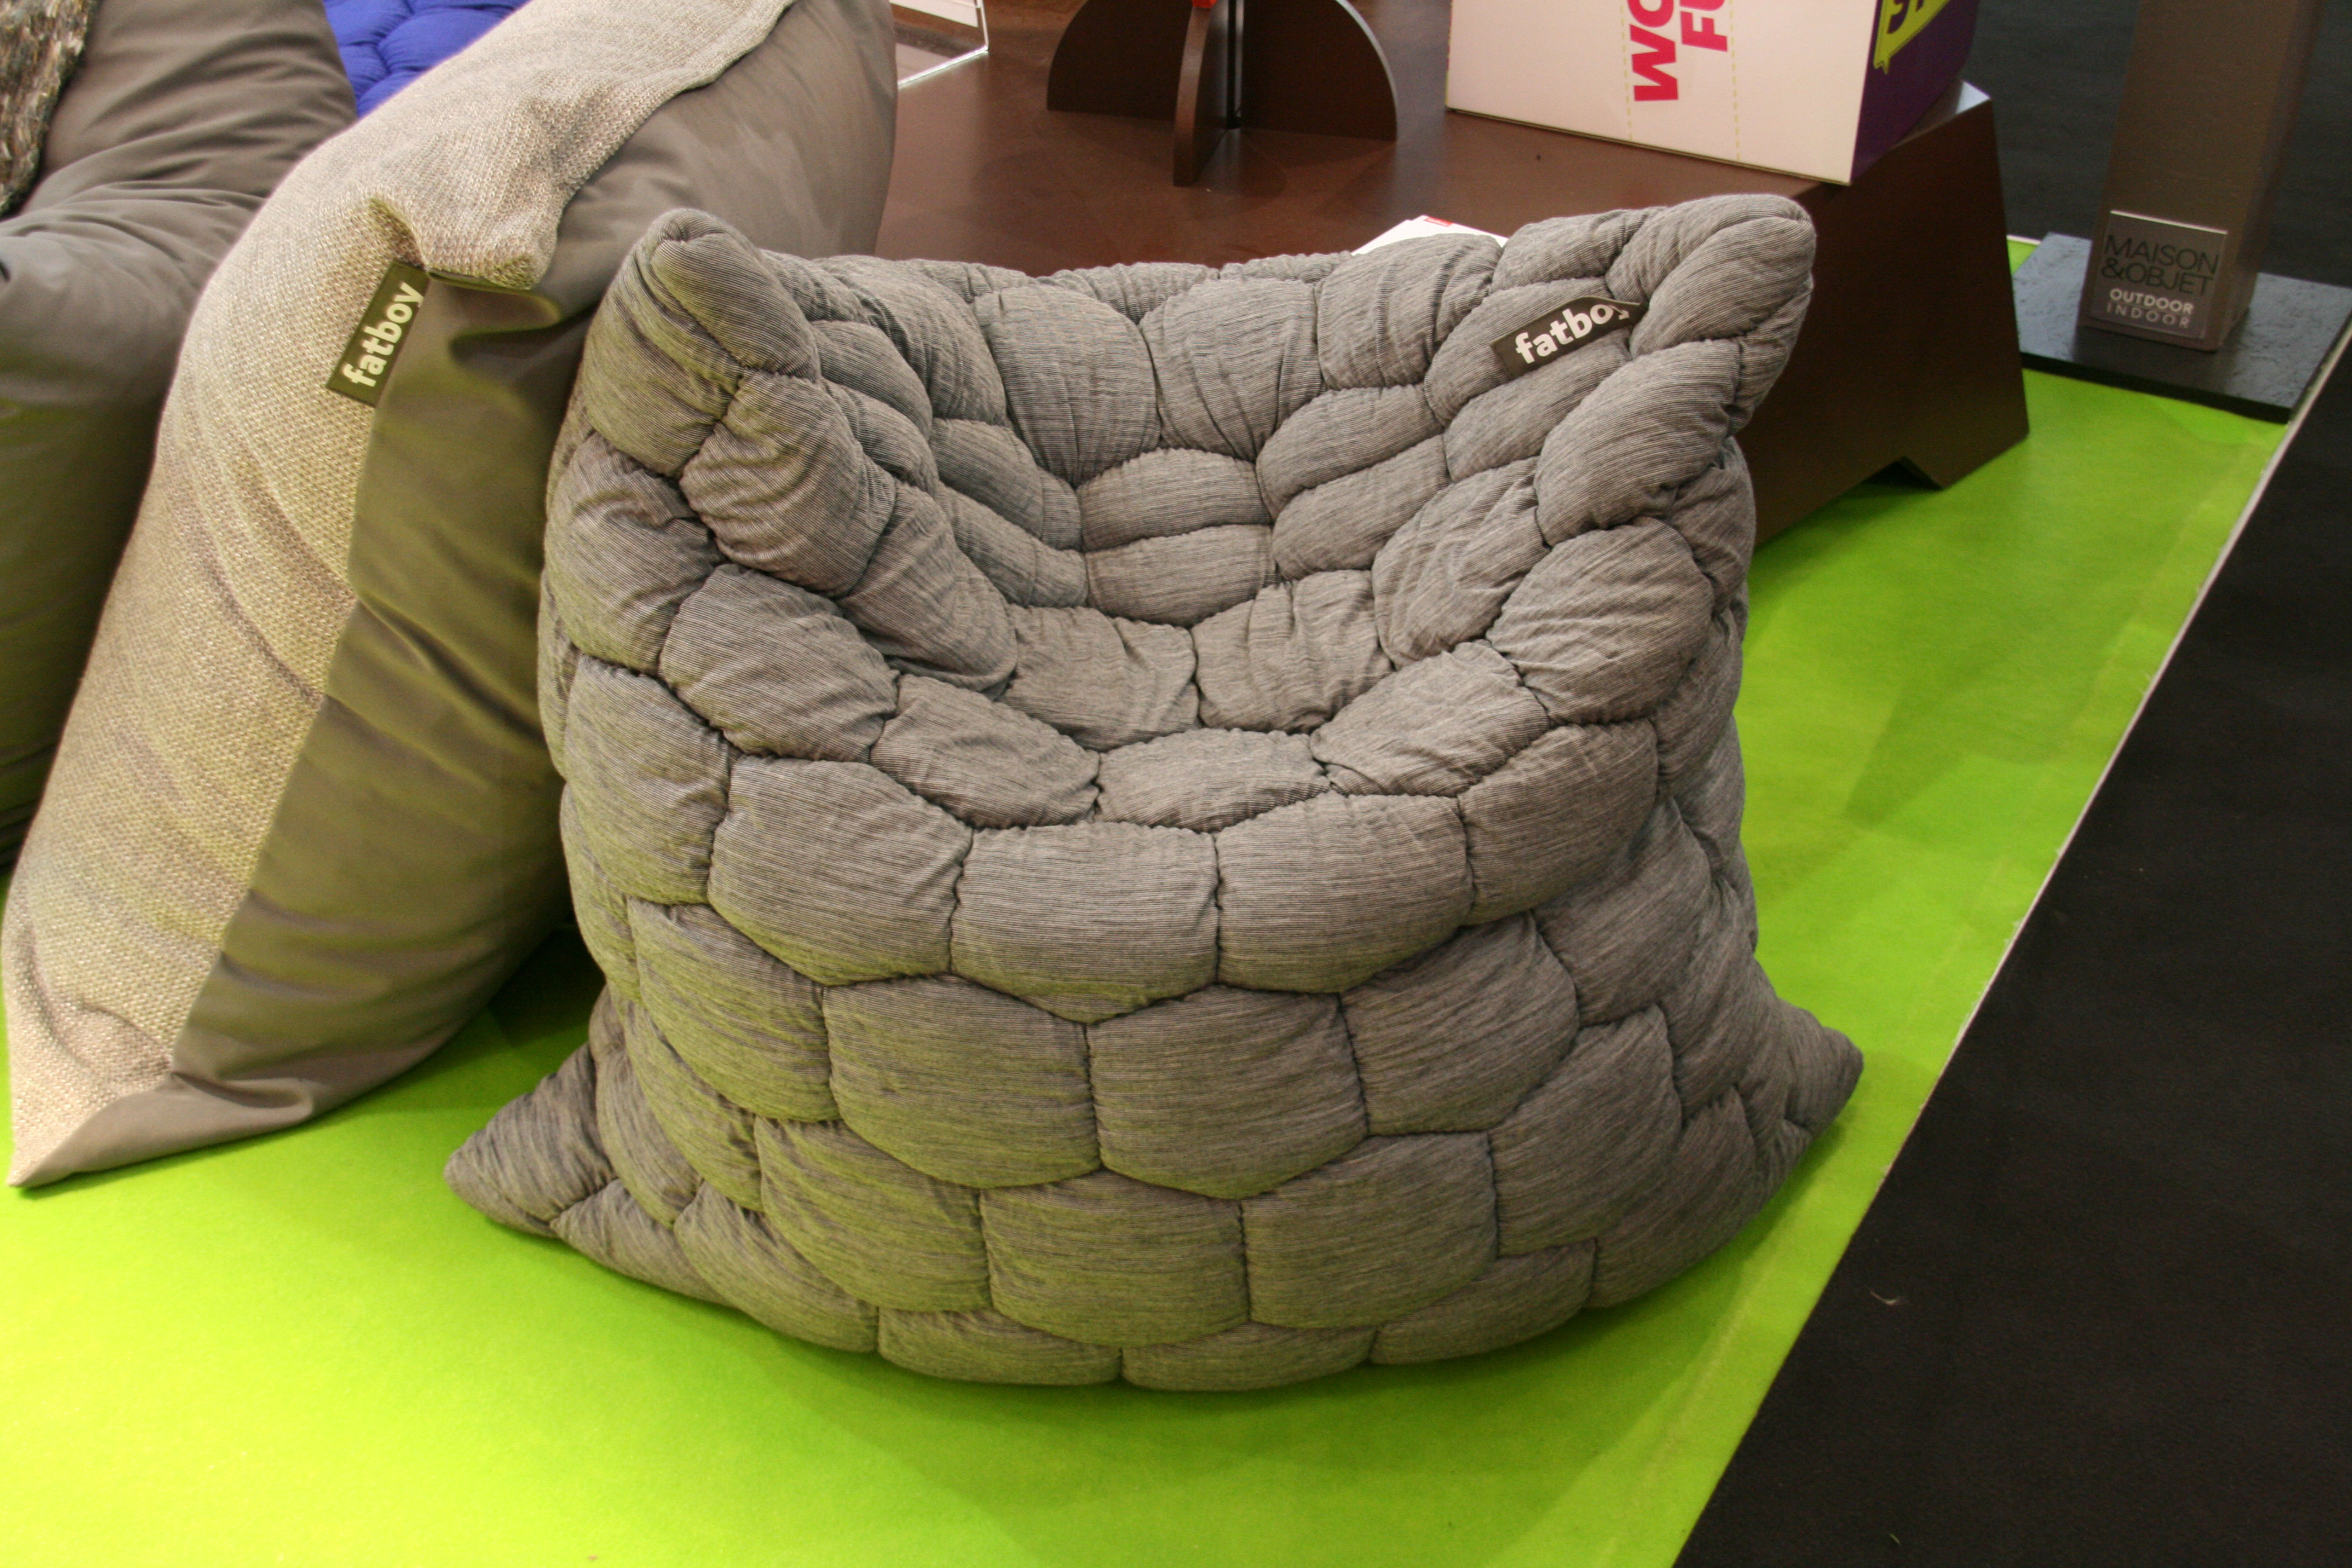 Pouf cuscino fat knit by fatboy grey made in design uk